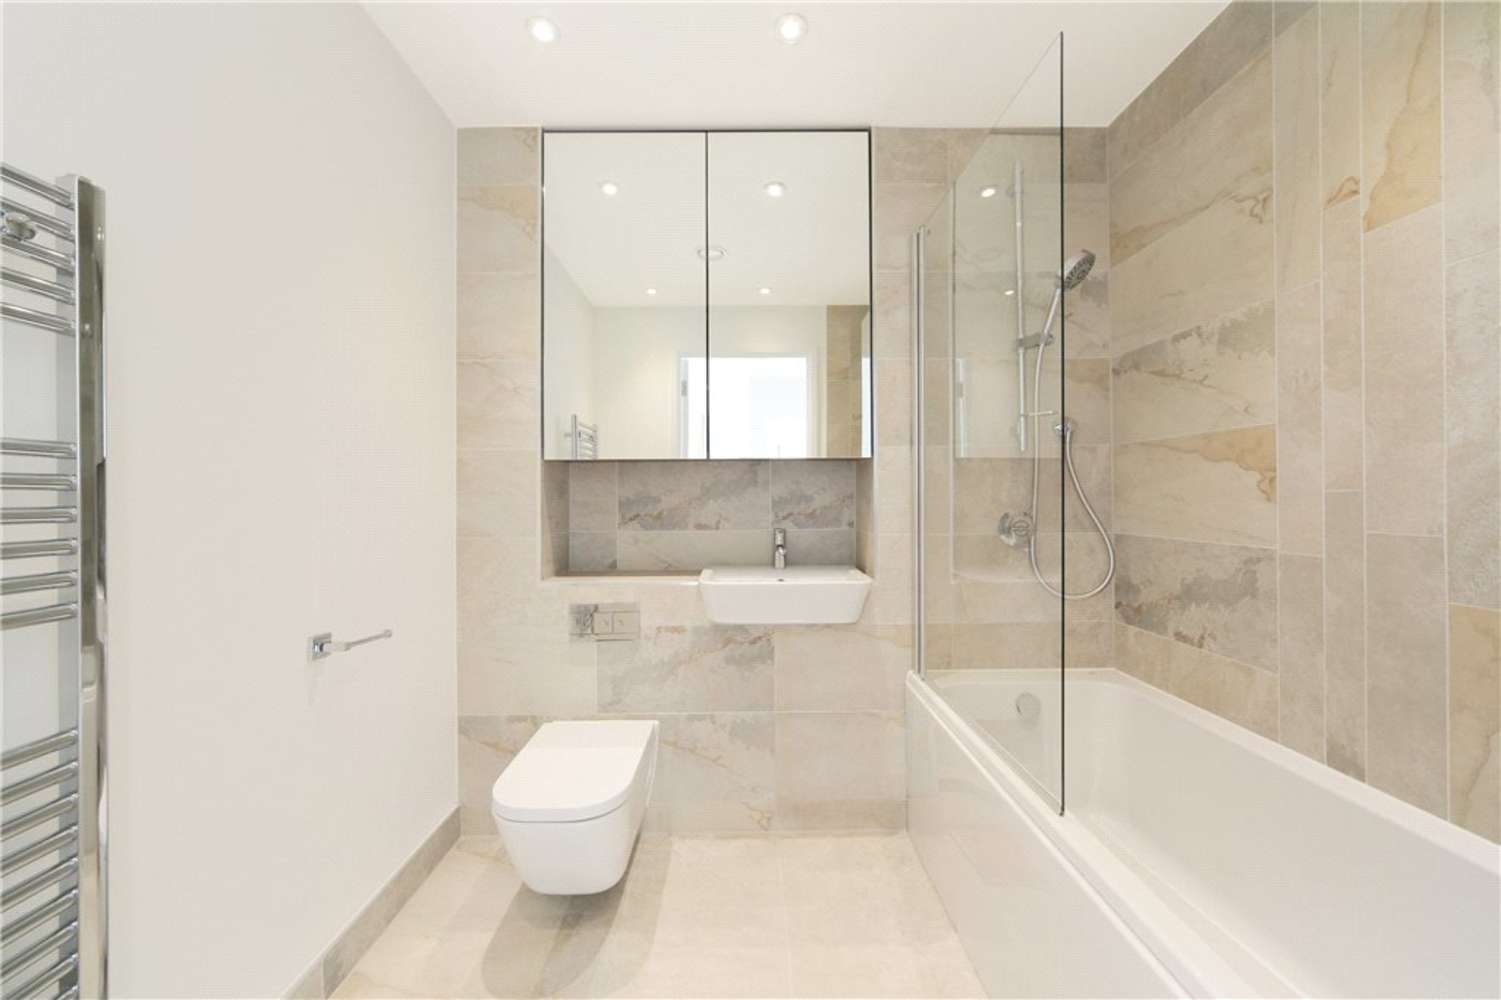 Apartment Chiswick, W4 - Edmunds House Colonial Drive W4 - 05